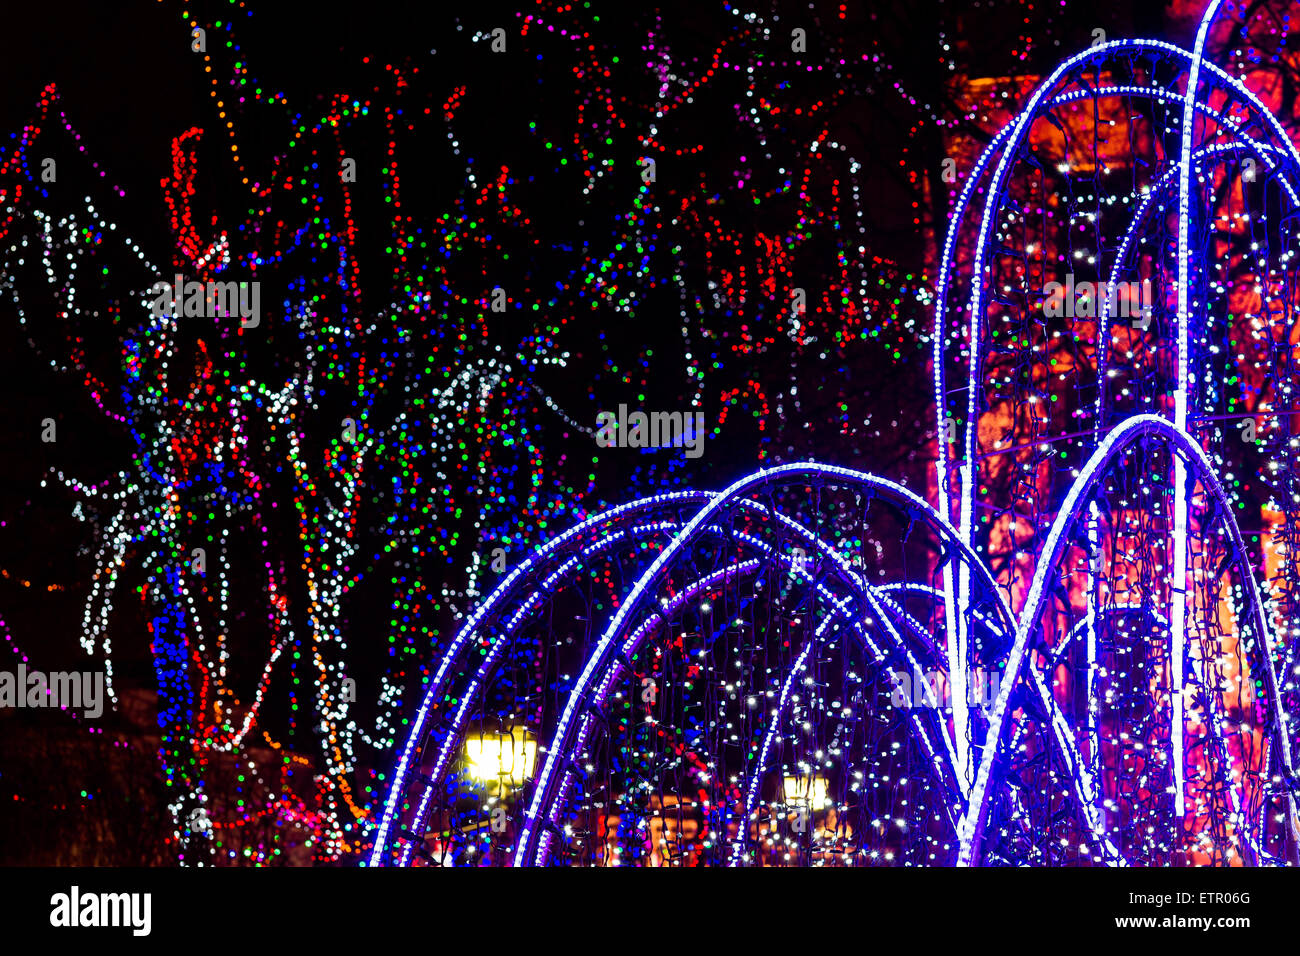 Winter illumination of trees and fountains in Moscow - Stock Image